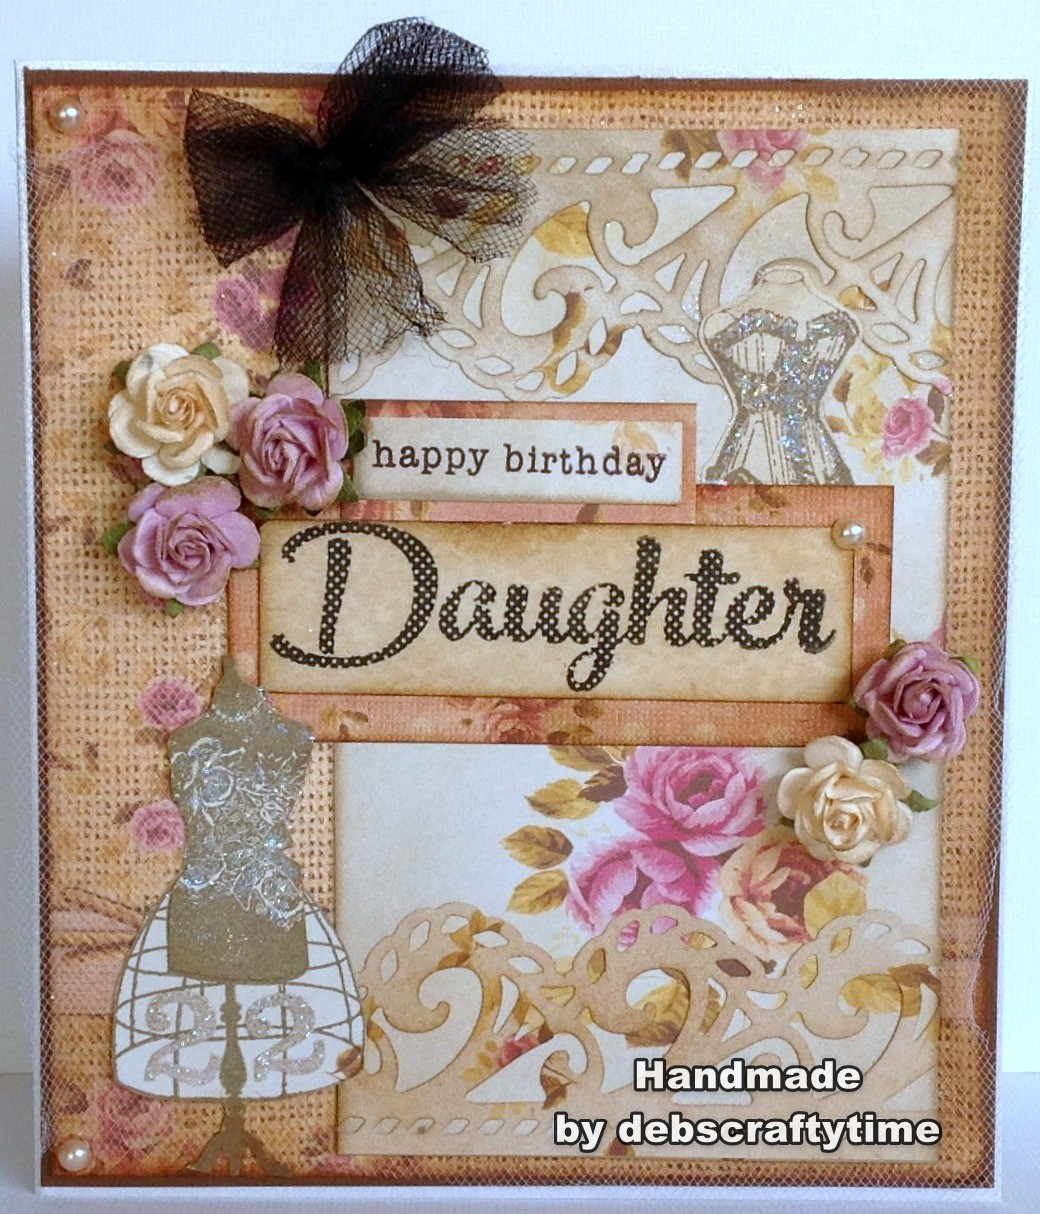 Debs' Crafty Time: Happy Birthday Daughter